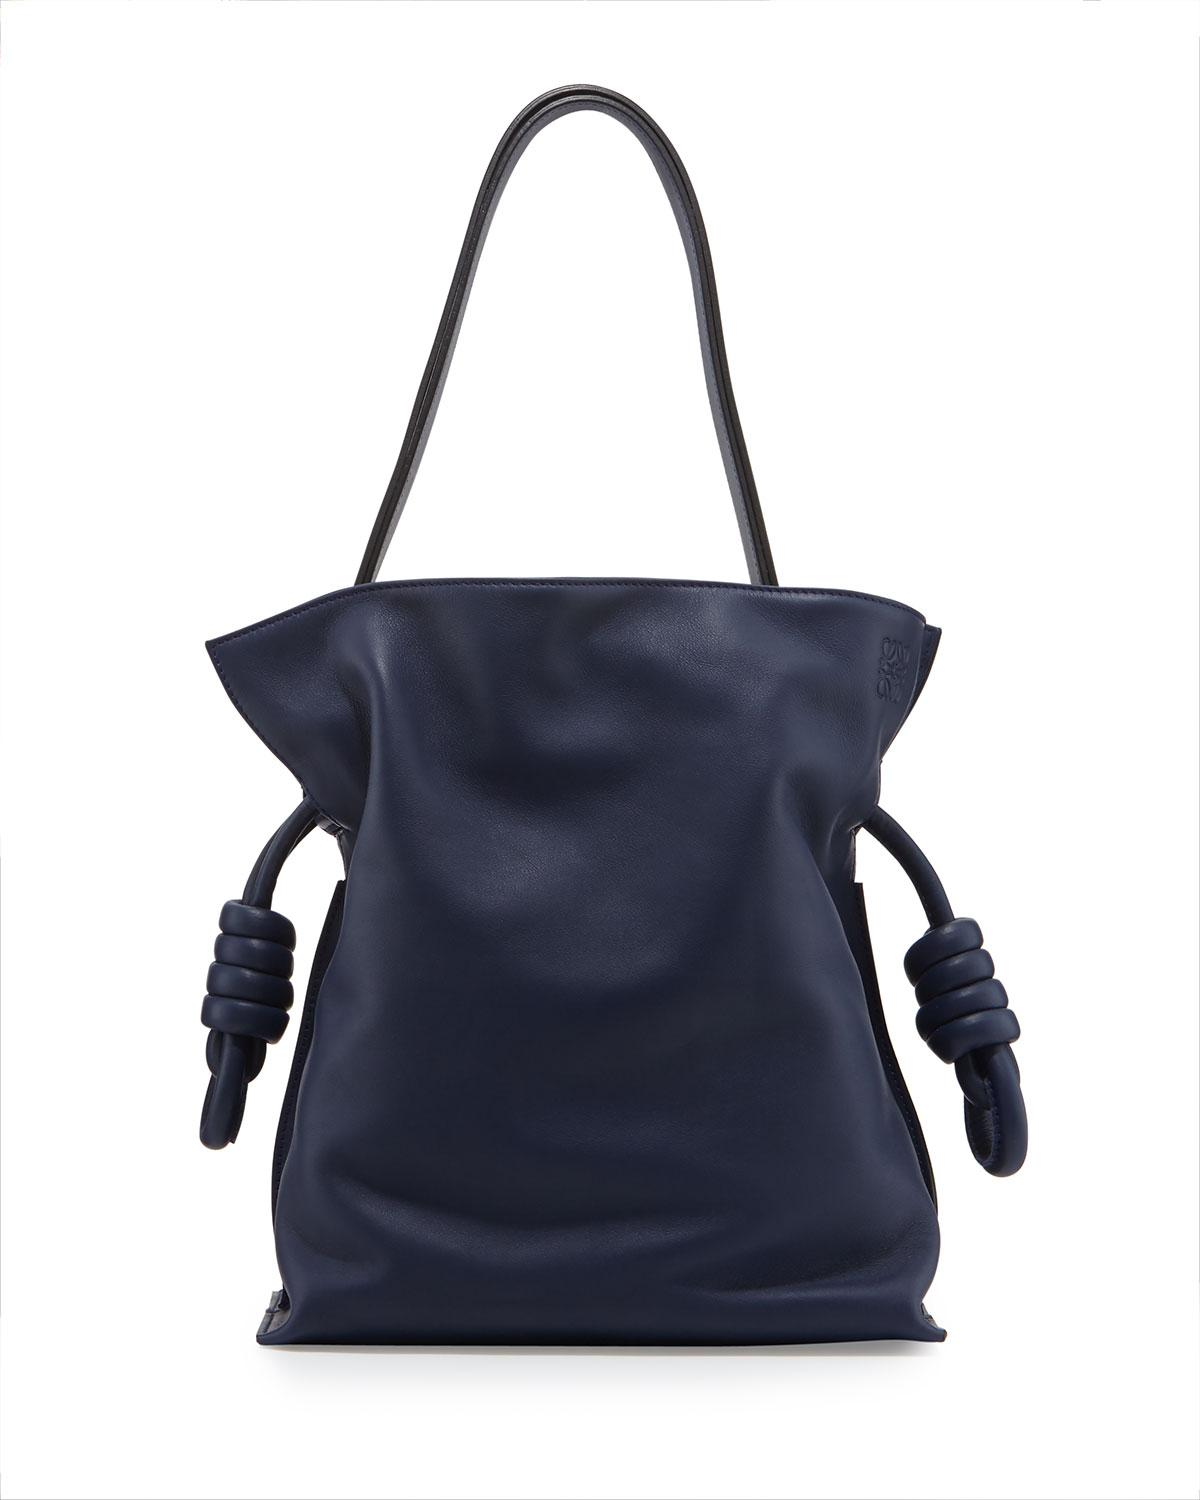 Loewe Flamenco Small Knot Bucket Bag in Blue - Lyst f91f89d7d4819